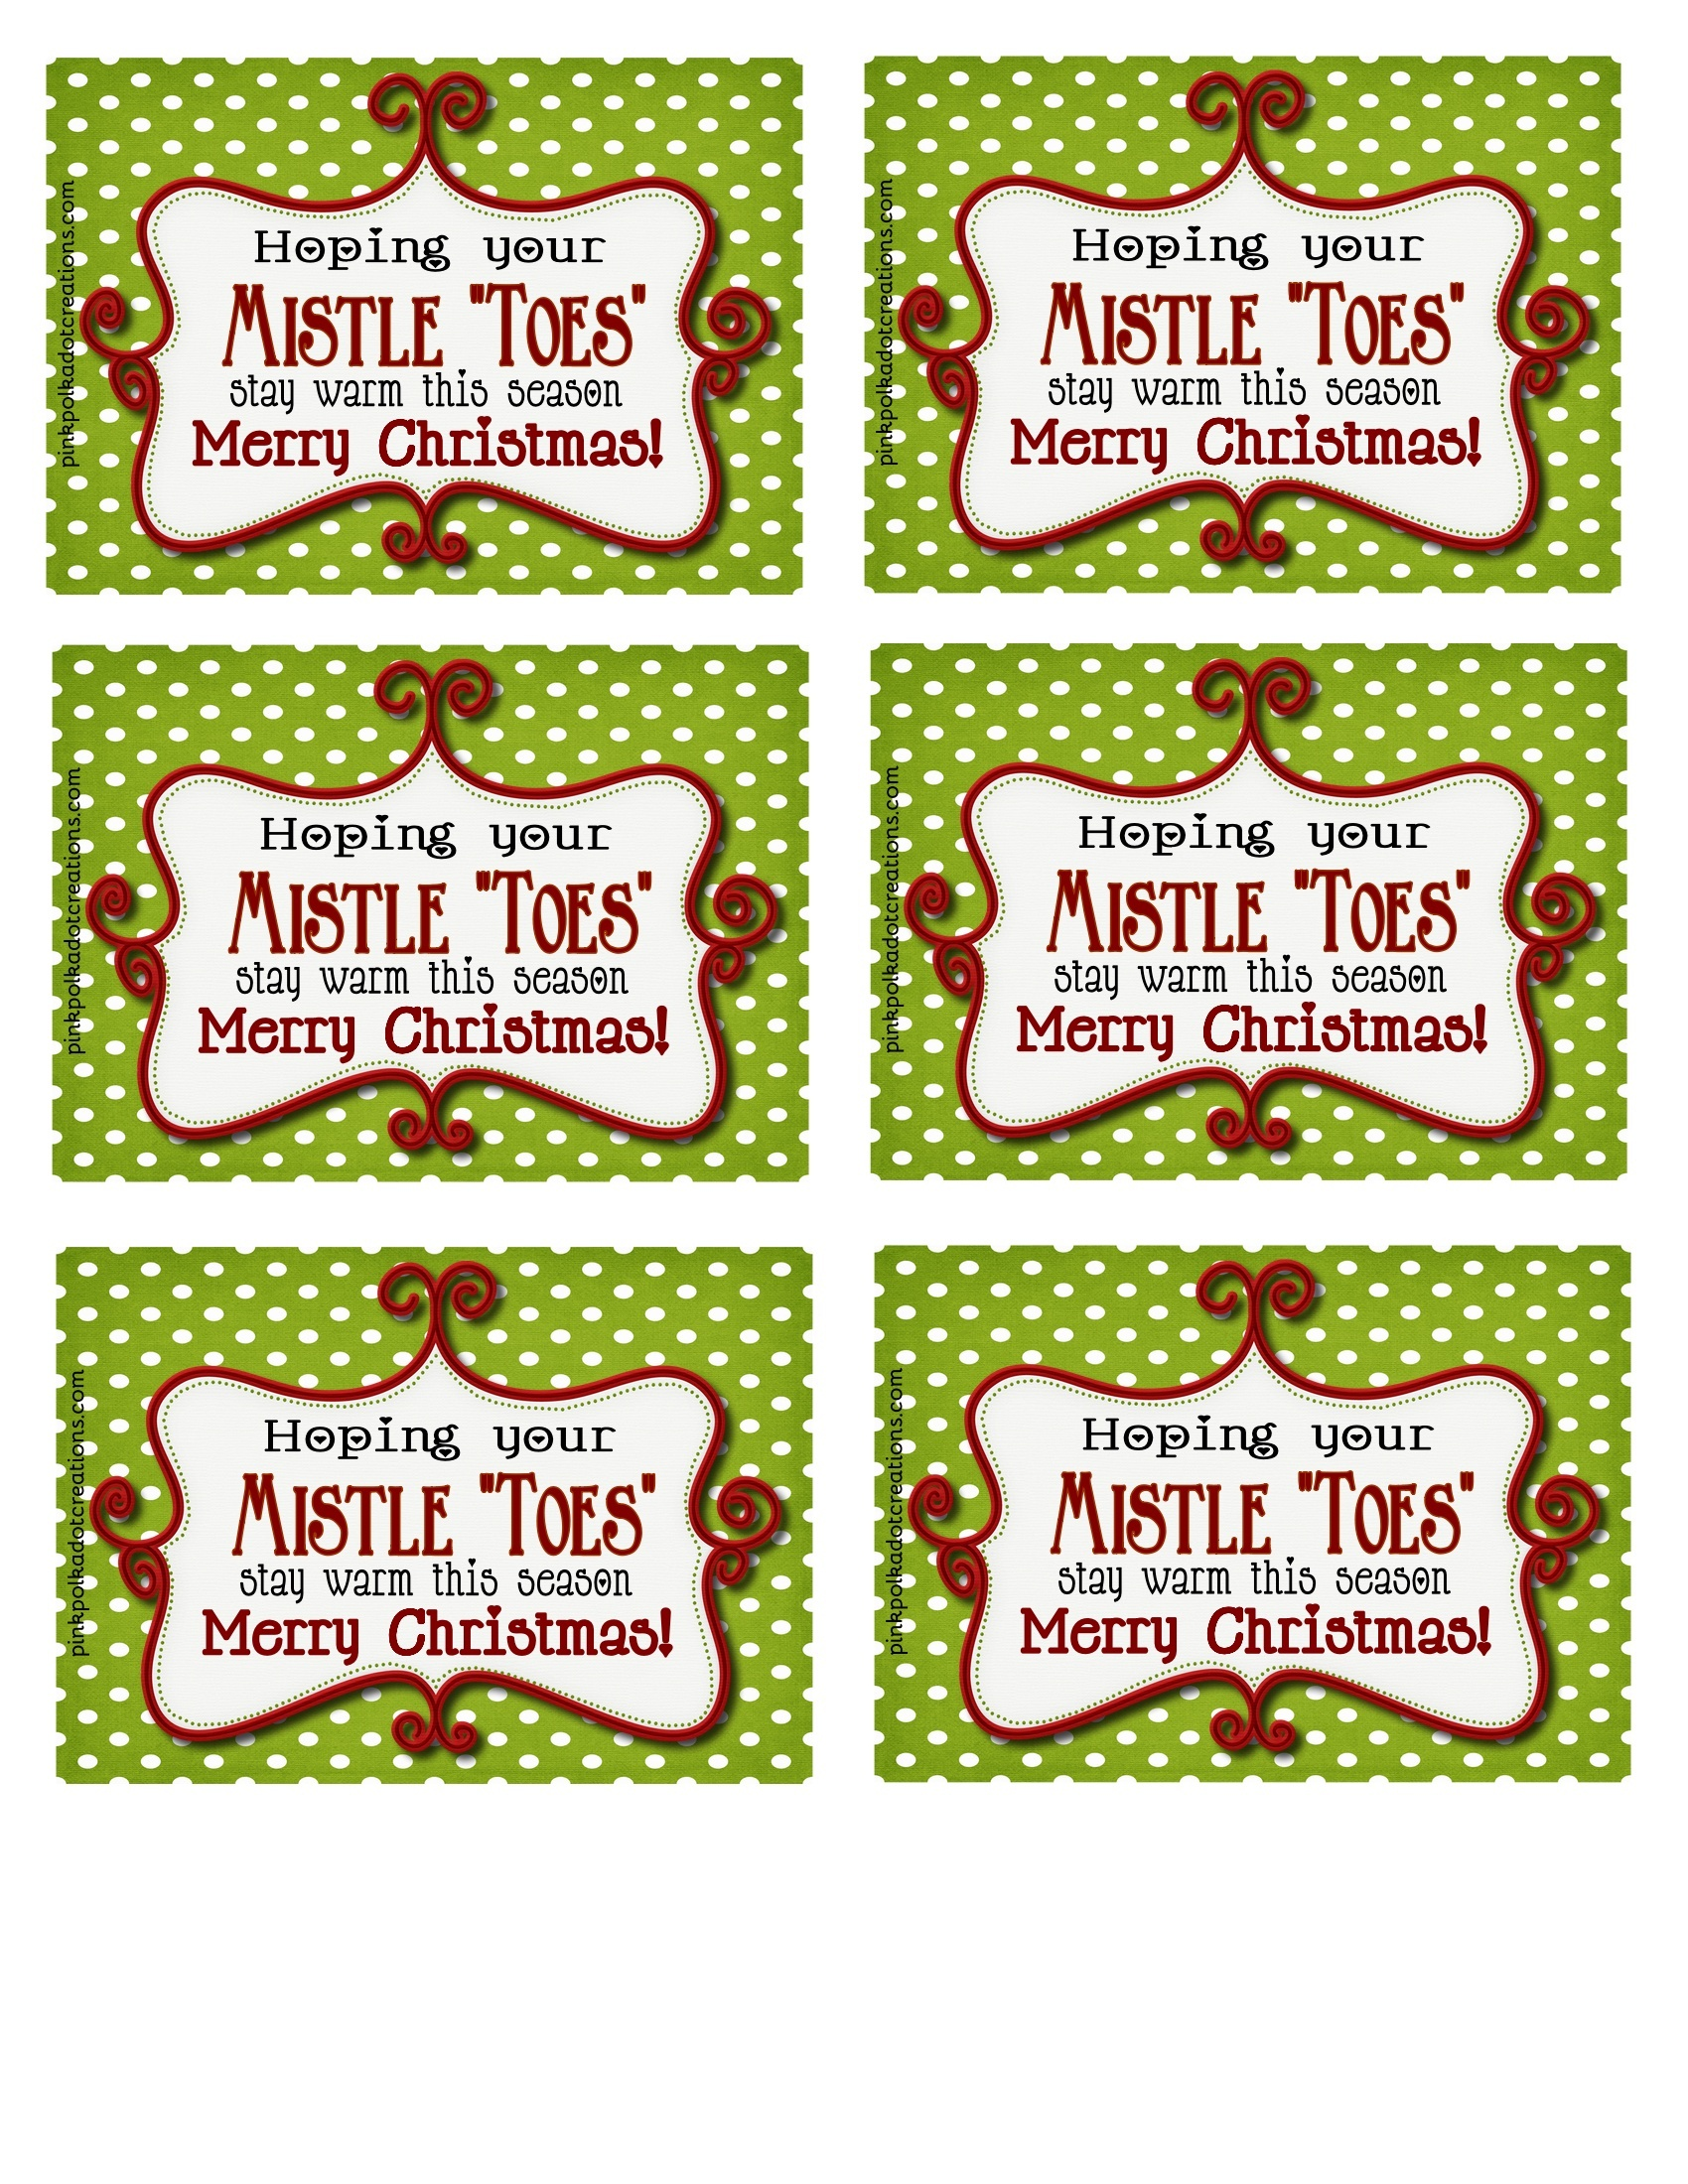 "Mistle""toes"" Gift Idea - Pink Polka Dot Creations - Free Printable Mistletoe Tags"